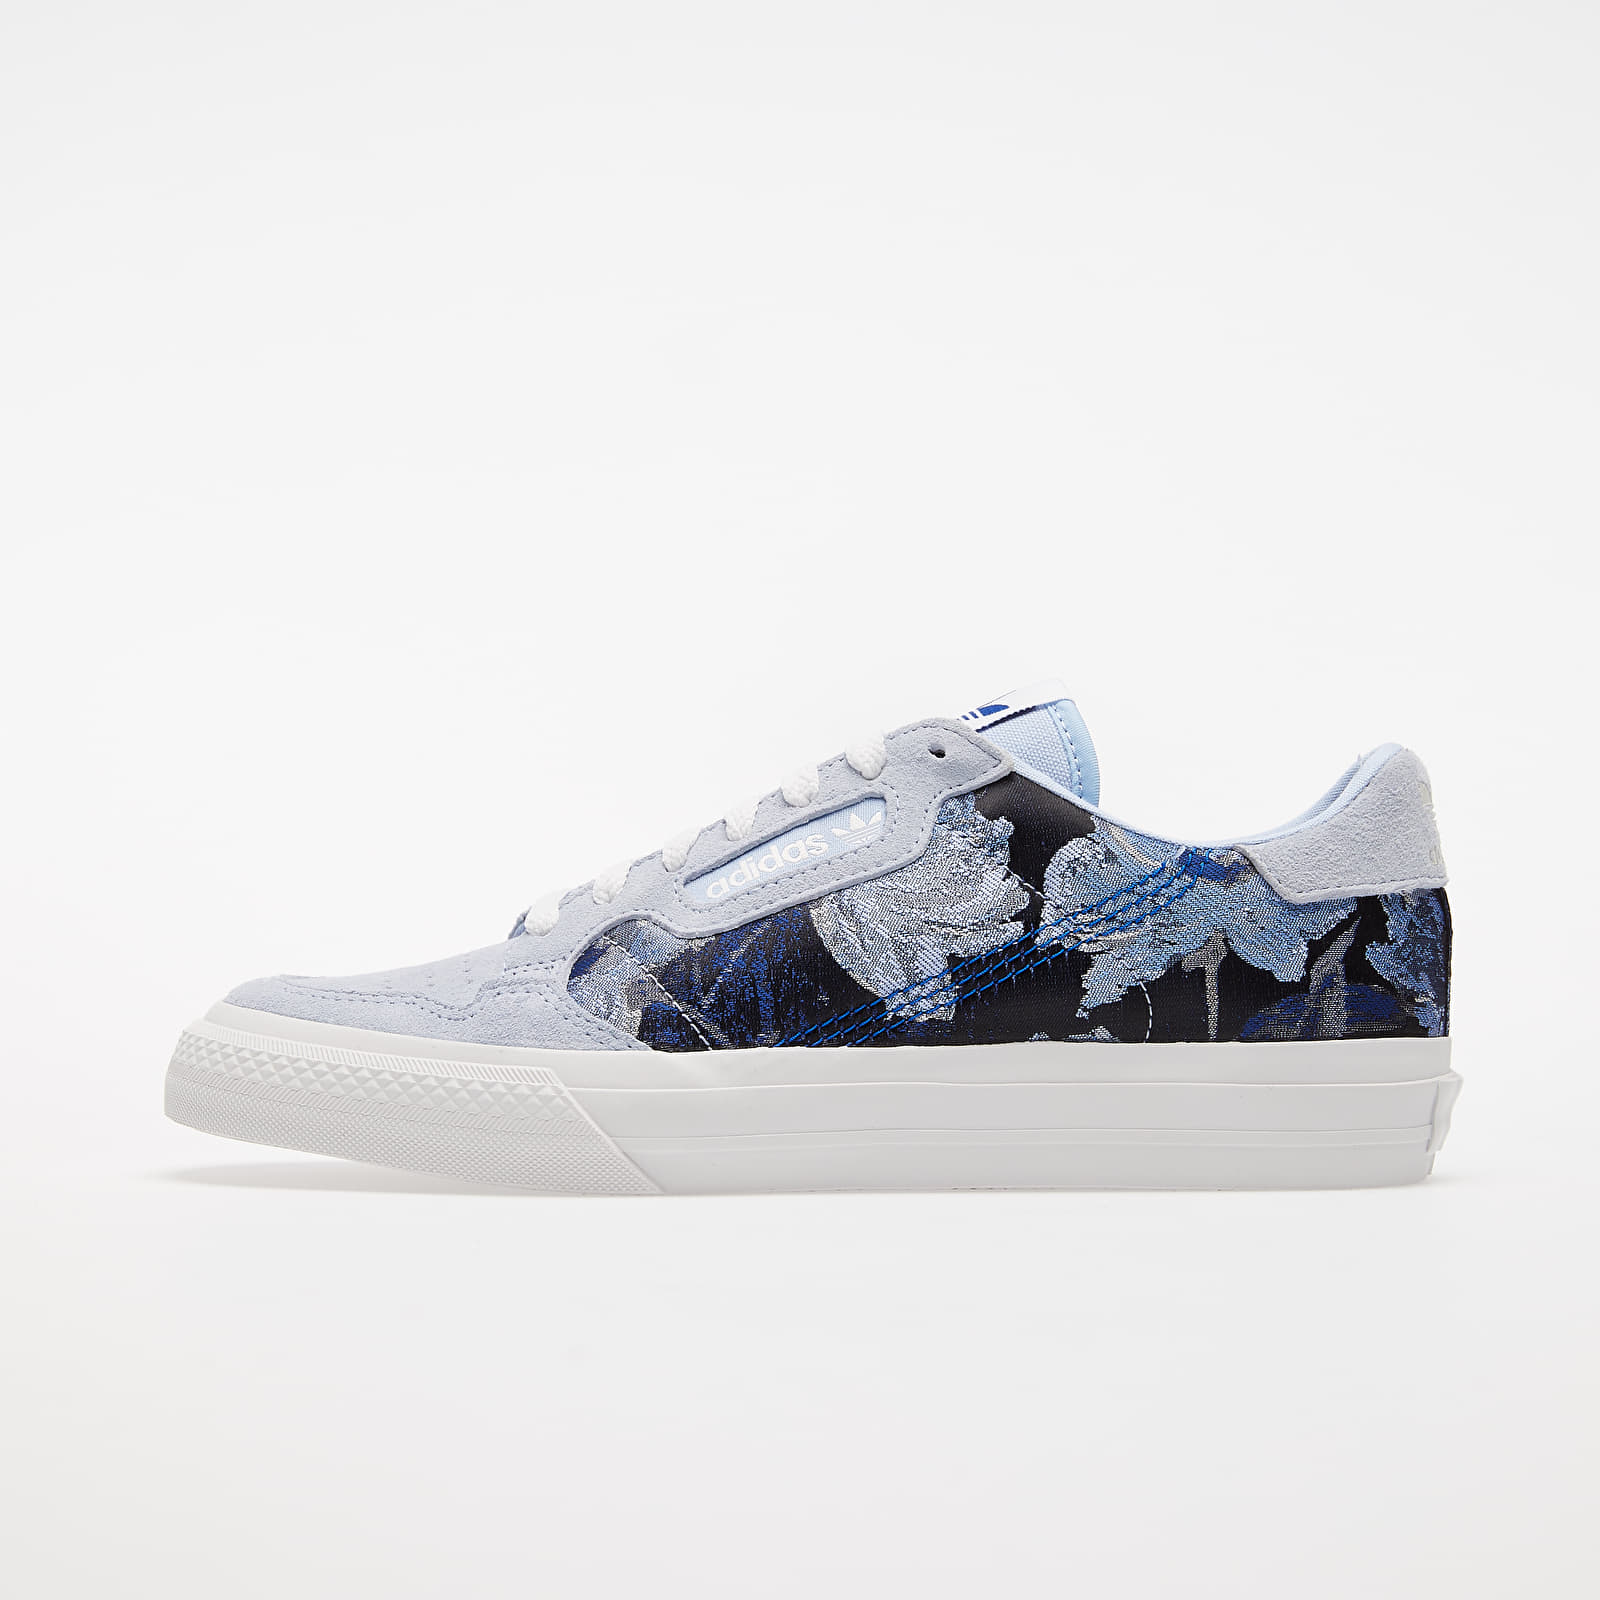 Women's shoes adidas Continental Vulc W Periwinkle/ Crystal White/ Royal Blue